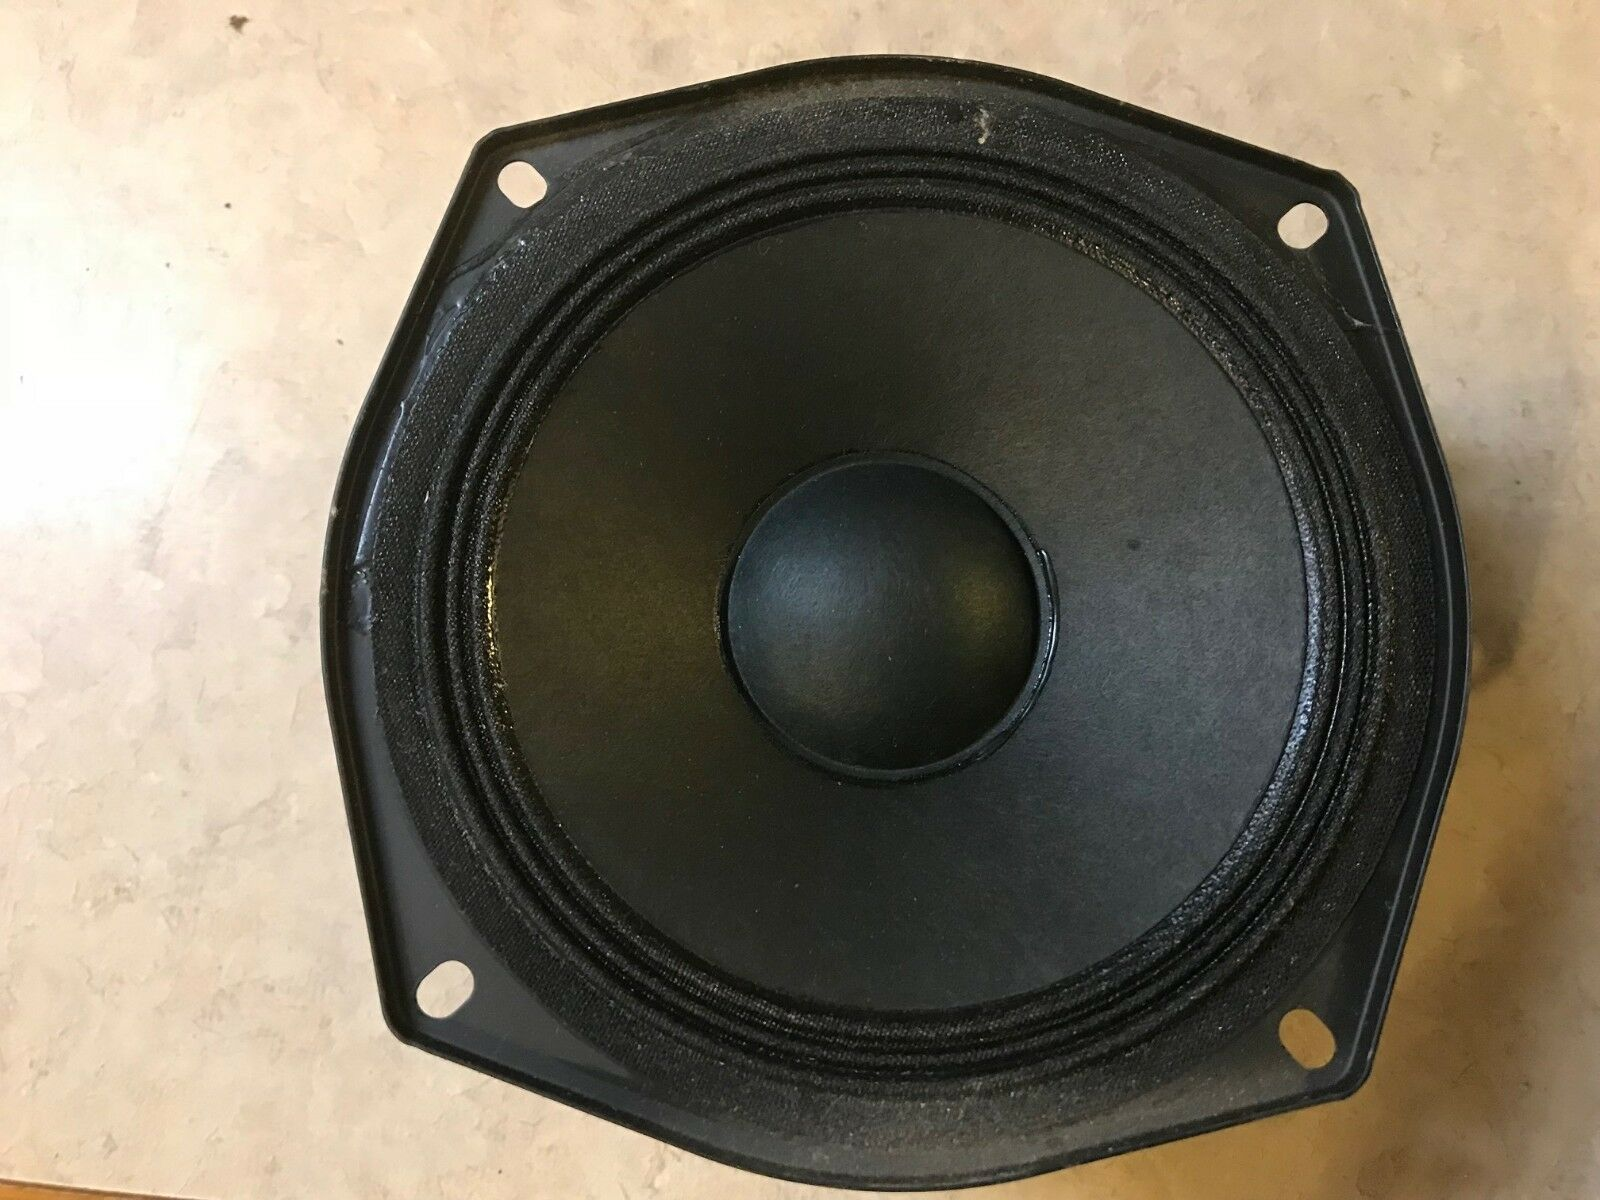 TSG ANZ5-1 NEO 5.25  woofer or mid bass  SPECIAL PRICING